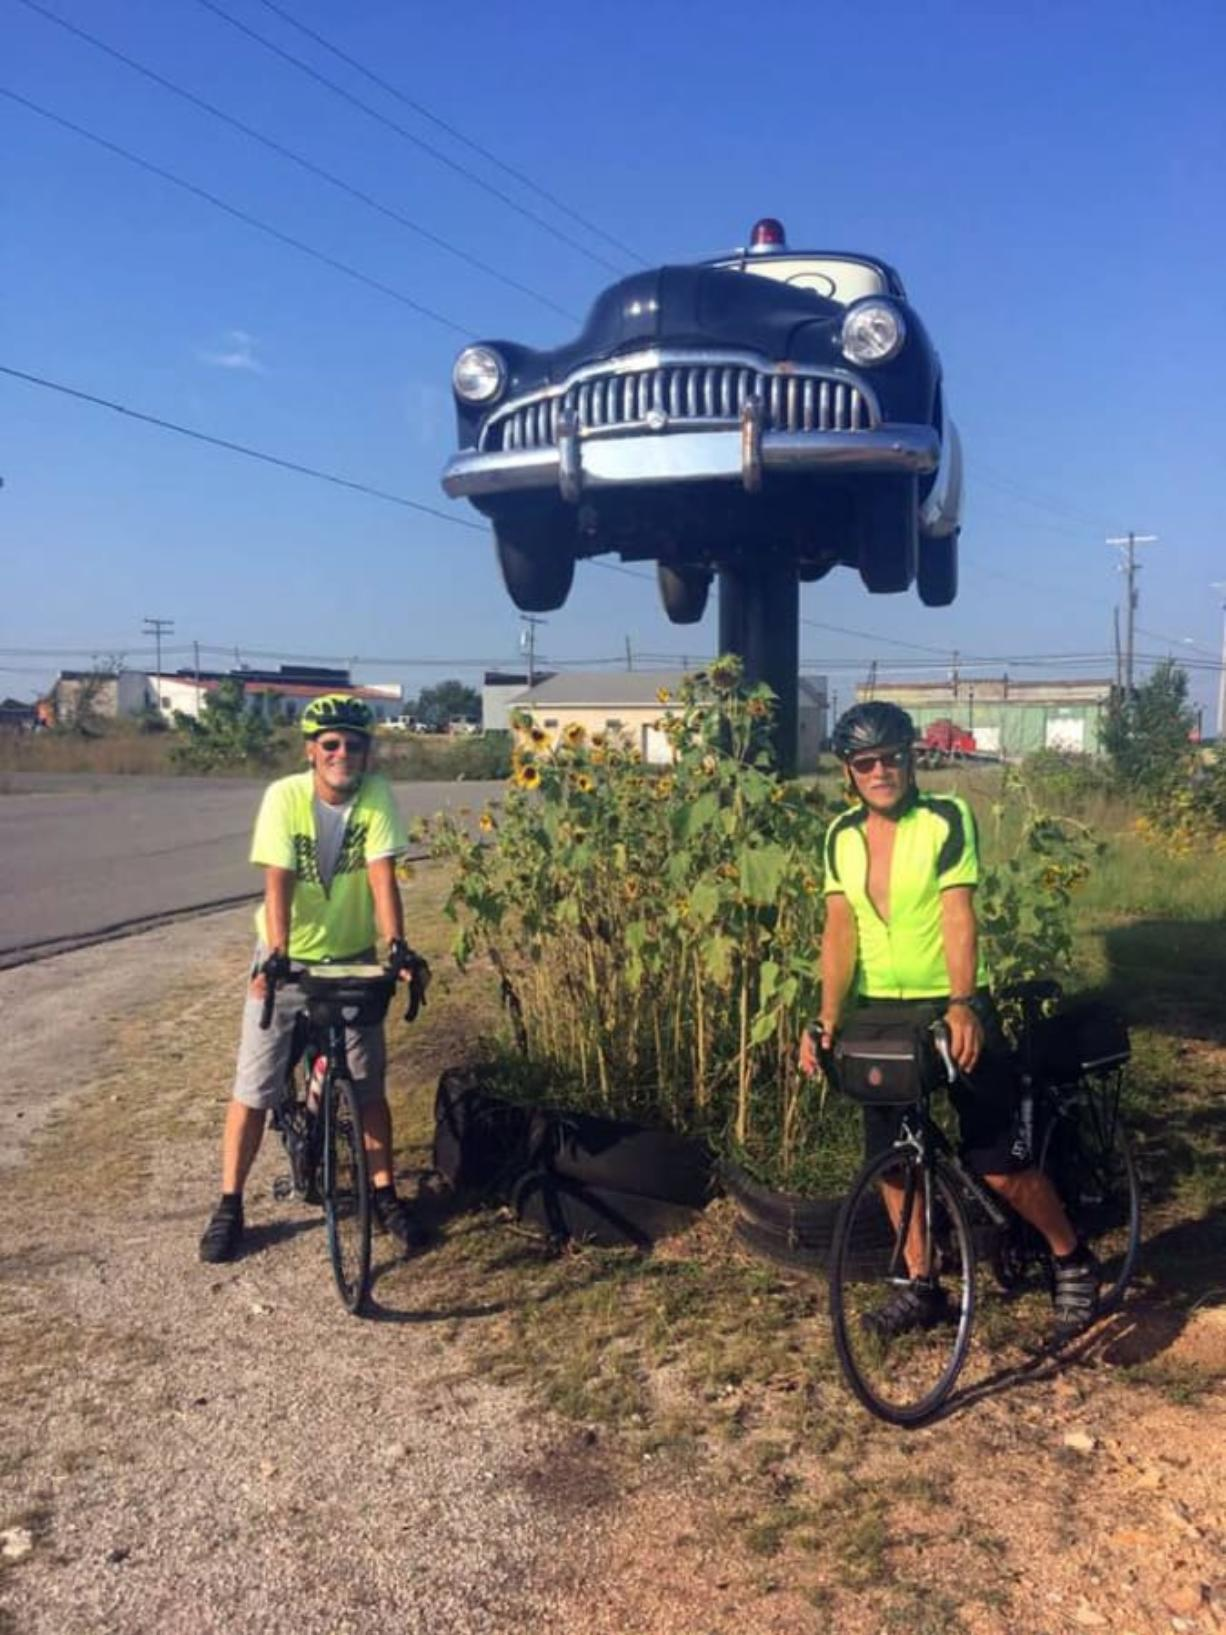 Brothers Mike, left, and Mark Roskam pose for a photo in Kansas during their cross-country cycling journey to raise funds for Open House Ministries. The trip was cut short after Mike Roskam was struck by a pickup in Oklahoma. (Contributed photo)